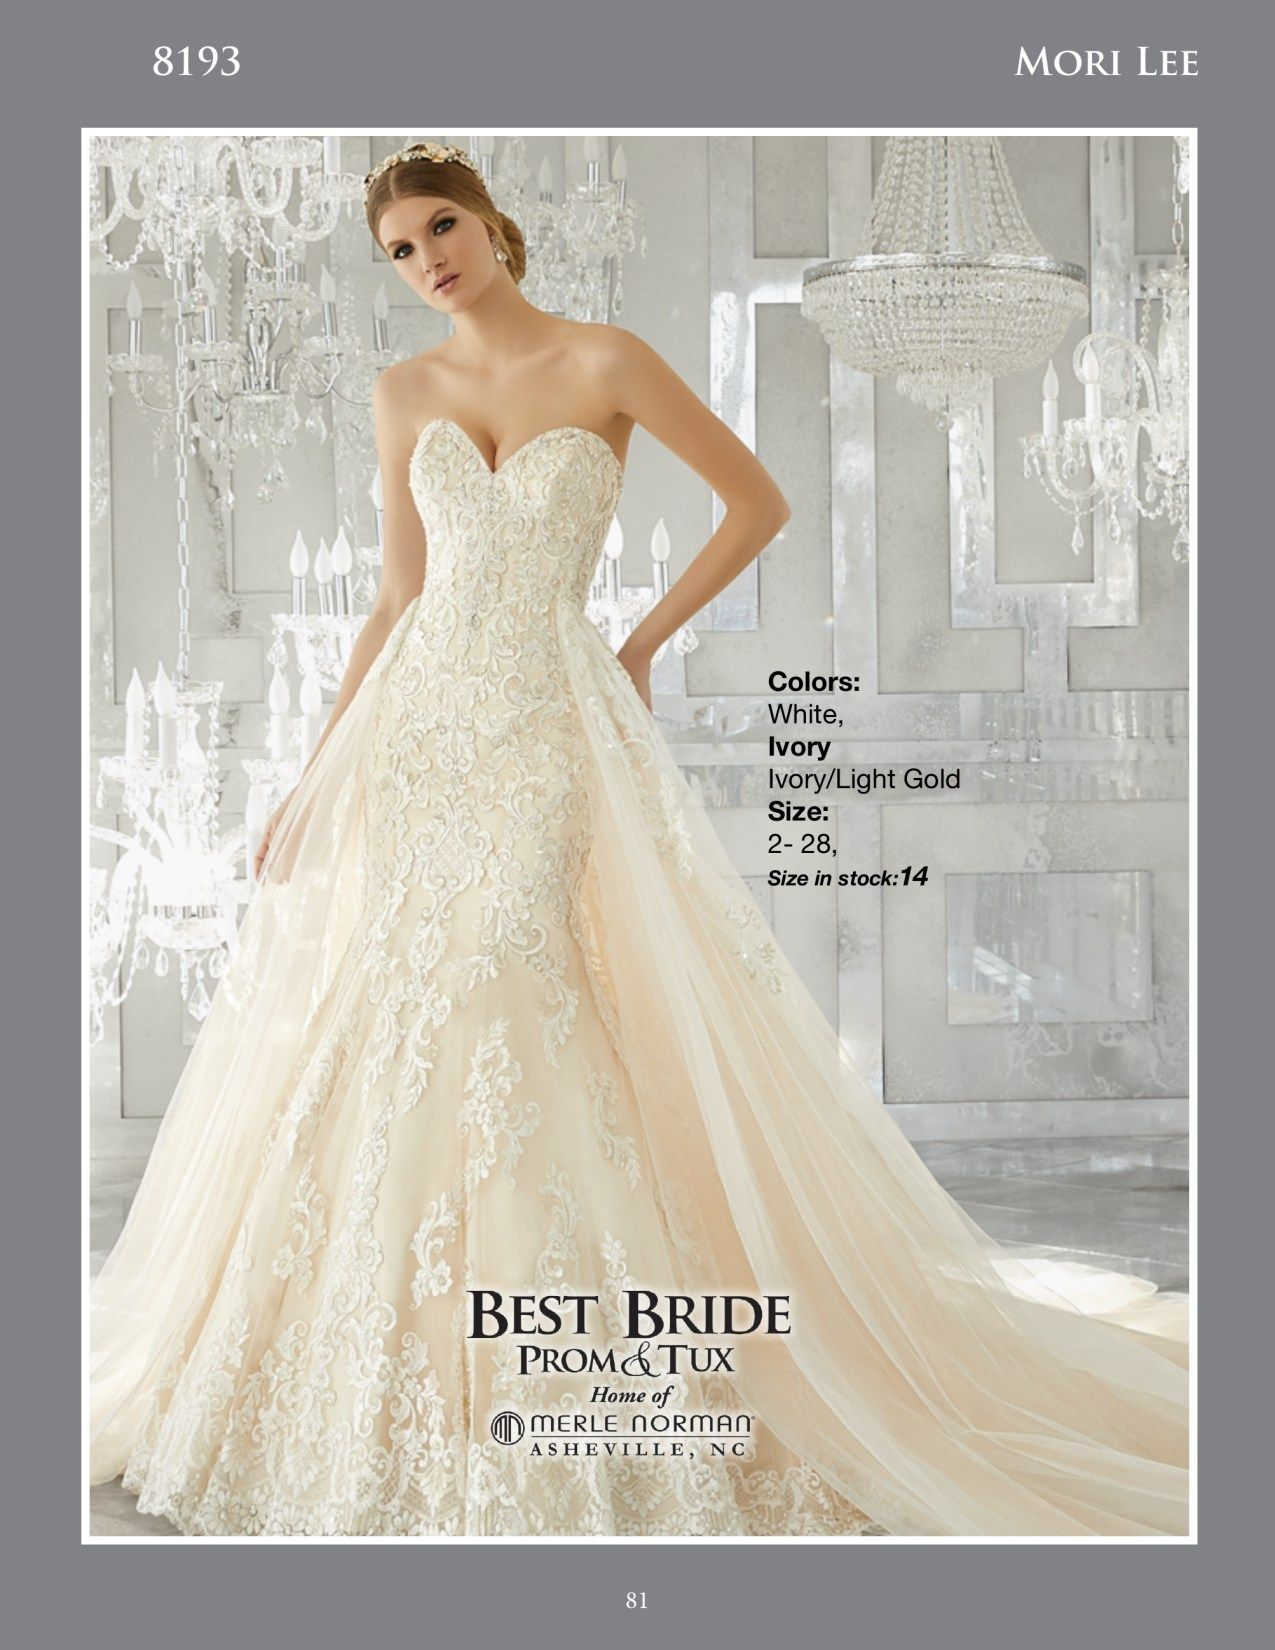 Mori lee gold wedding dress  Breathtaking and Timeless This Stunning Fit and Flare Wedding Gown